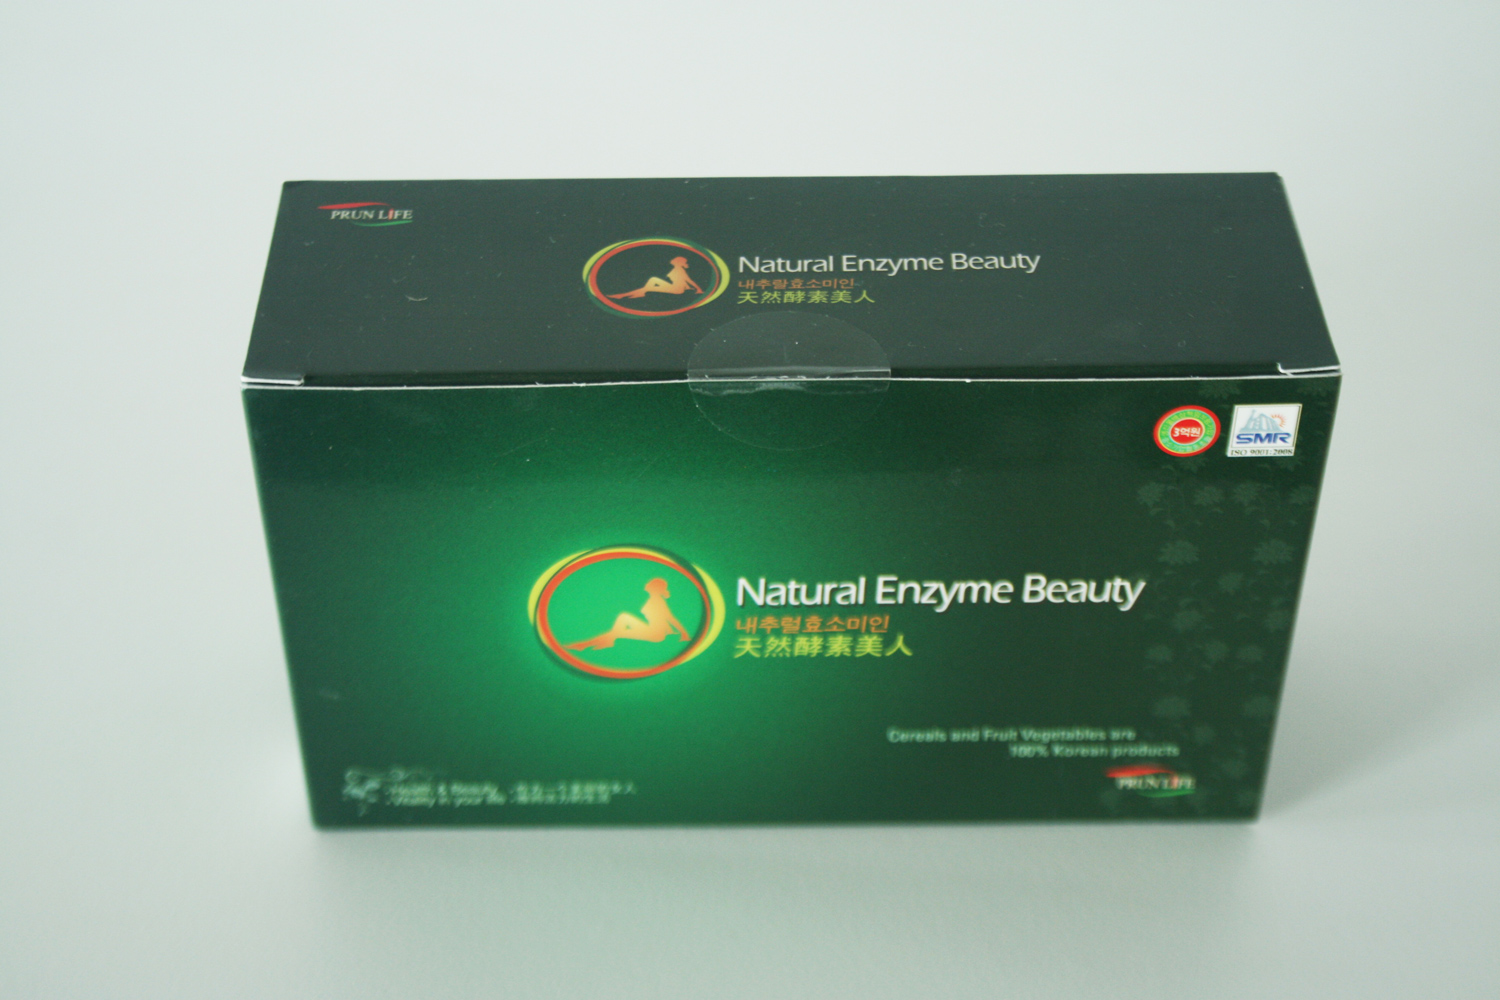 NATURAL ENZYME BEAUTY